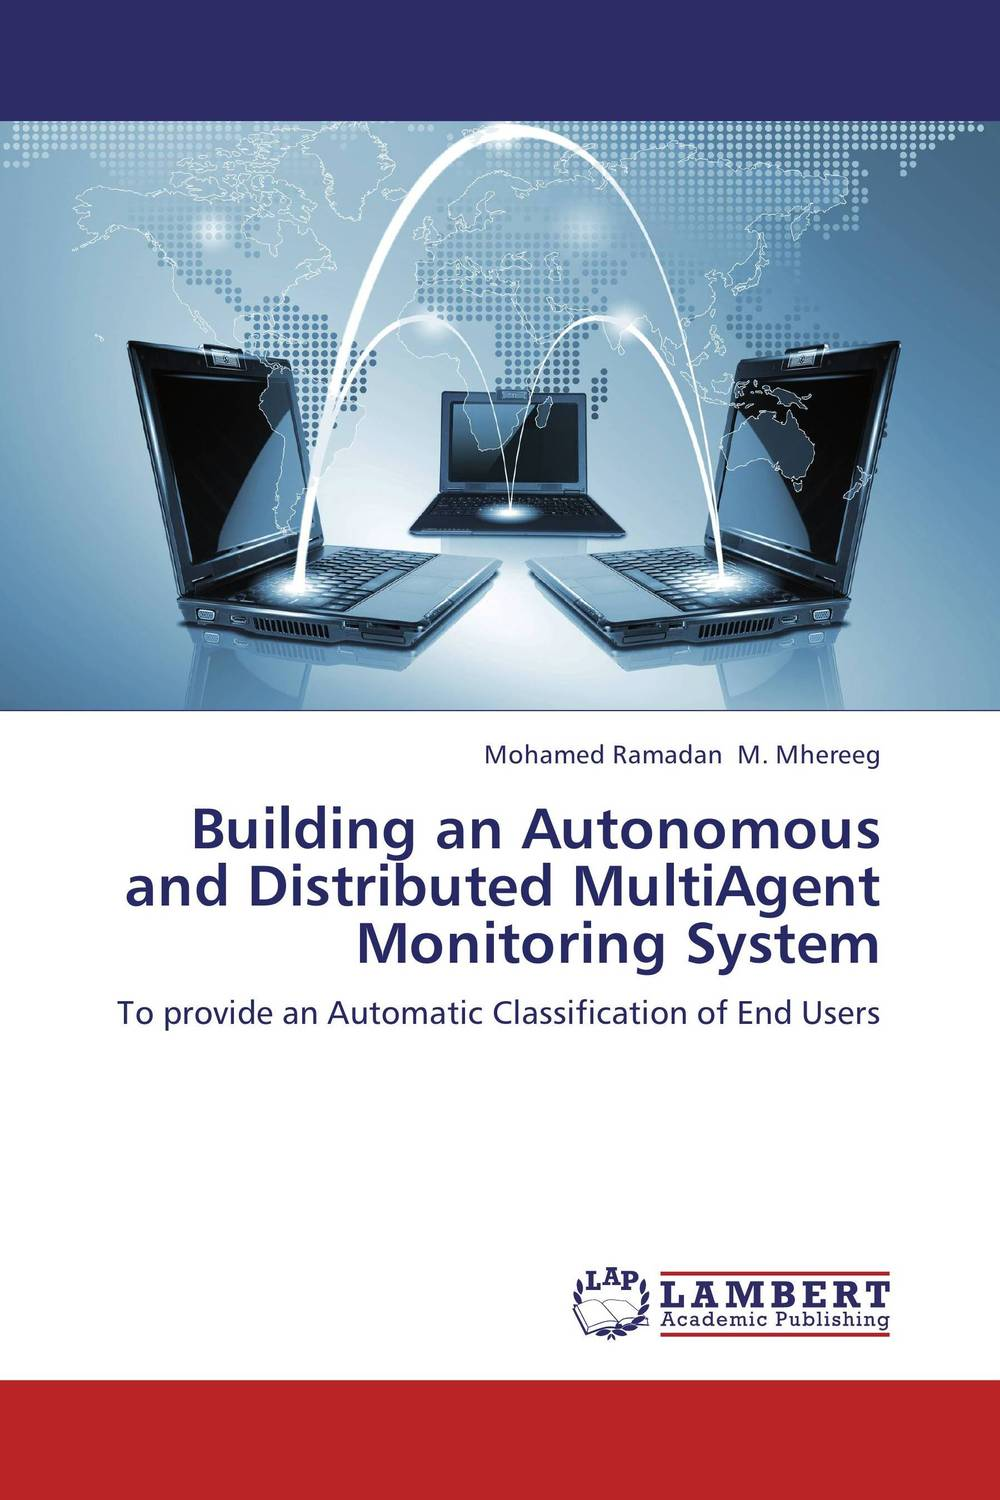 Building an Autonomous and Distributed MultiAgent Monitoring System peter stone layered learning in multiagent systems – a winning approach to robotic soccer